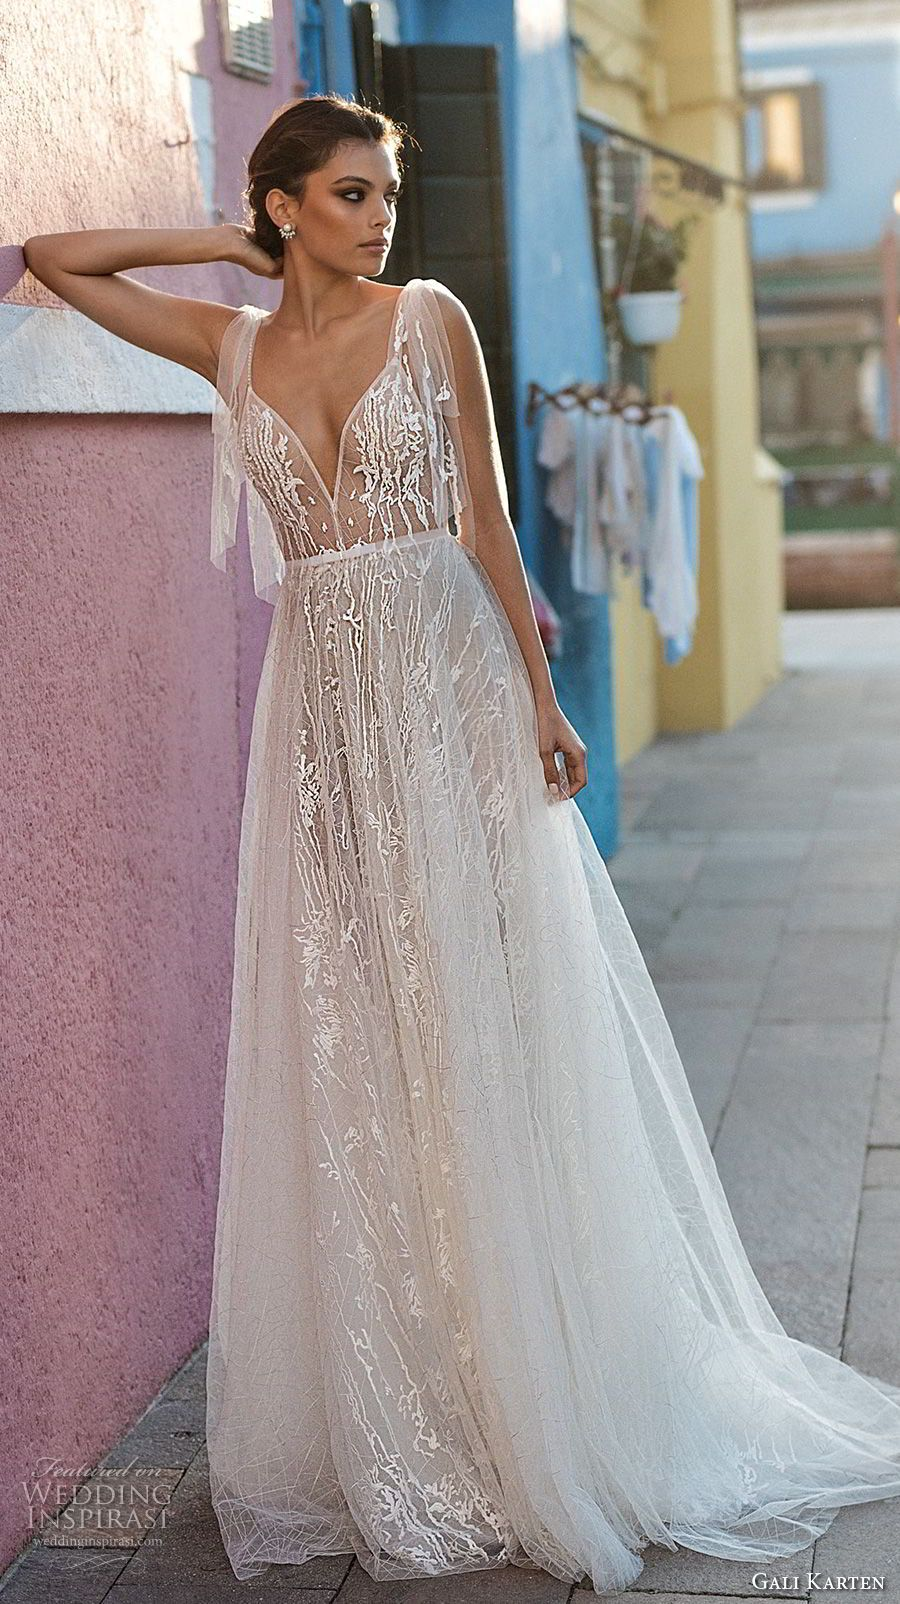 Gali karten wedding dresses u first look at the ucburanoud bridal